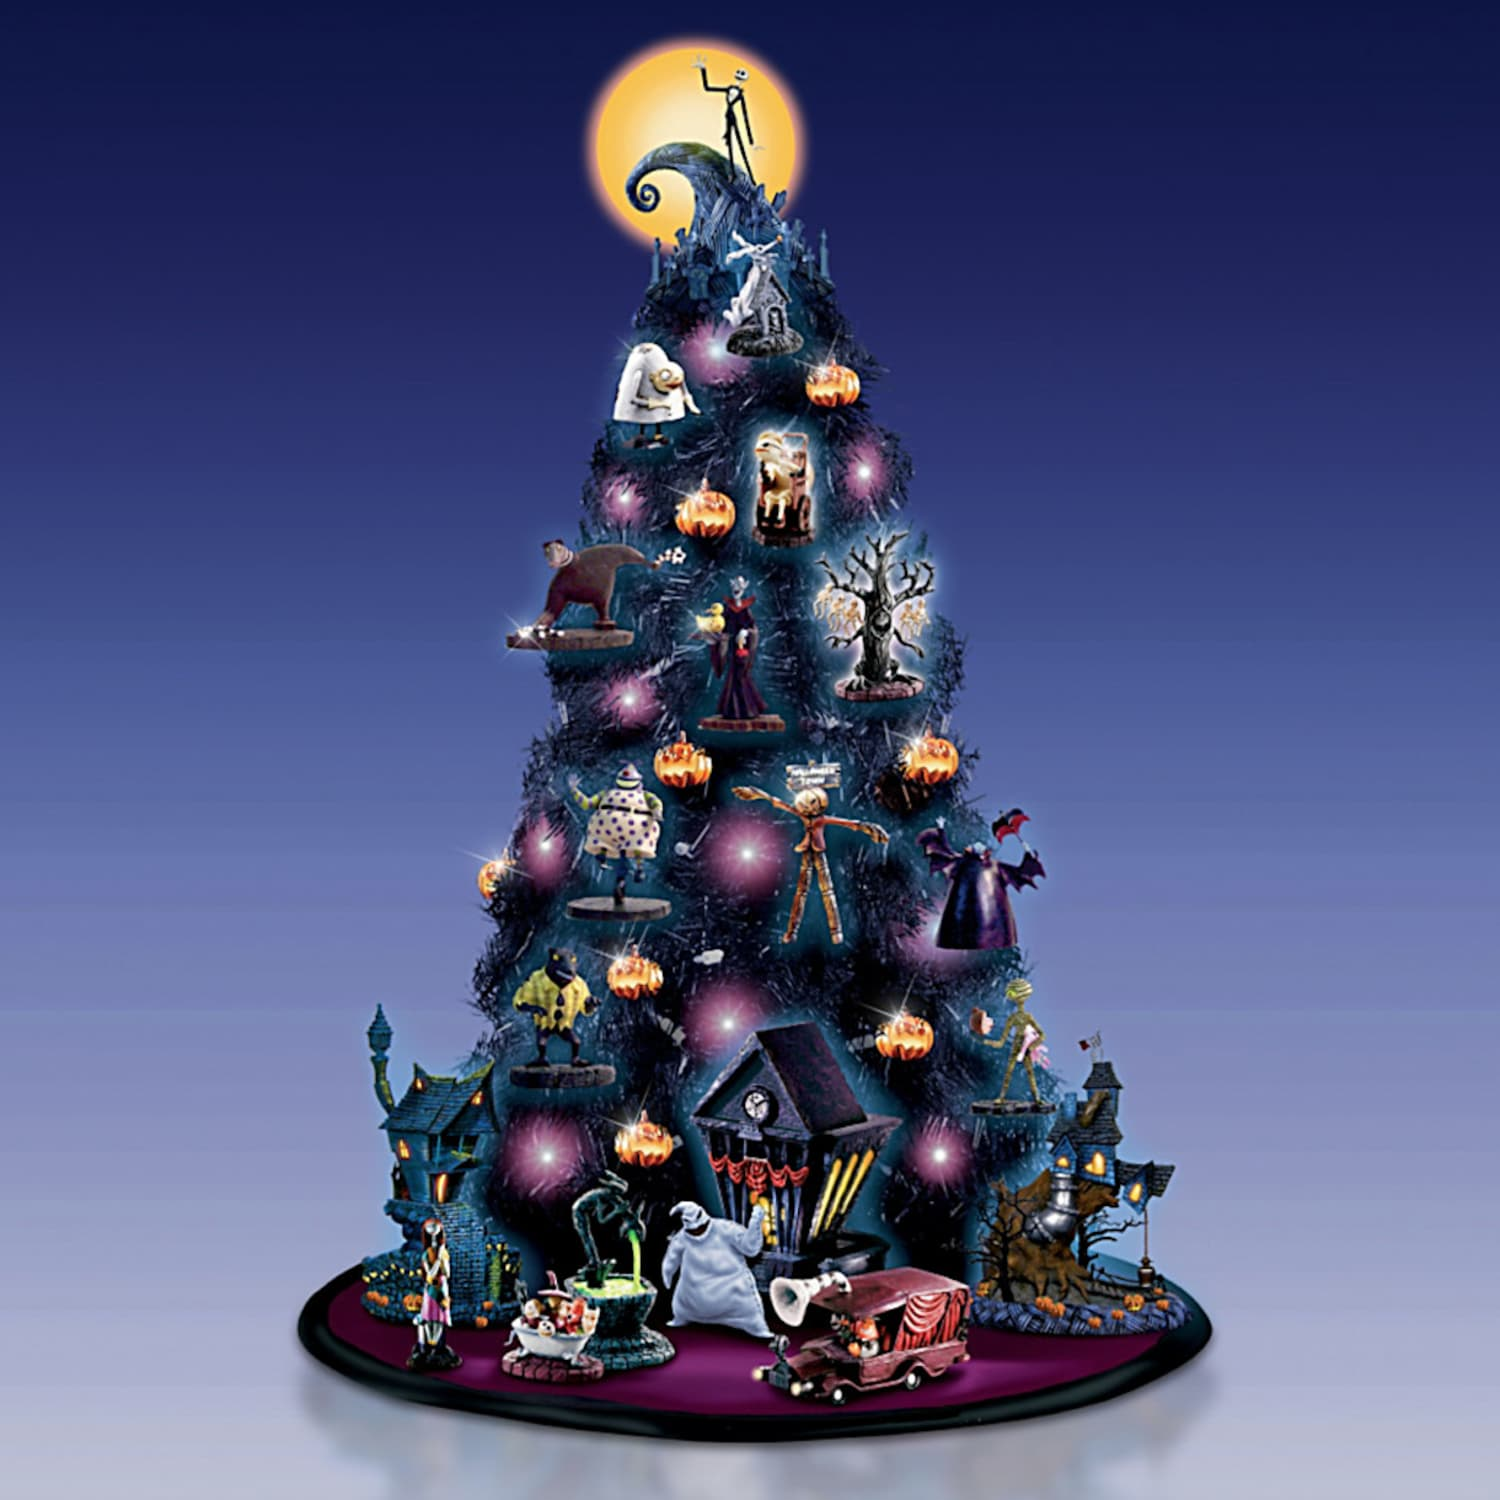 A Nightmare Before Christmas Tree Is Here For Halloween Apartment Therapy